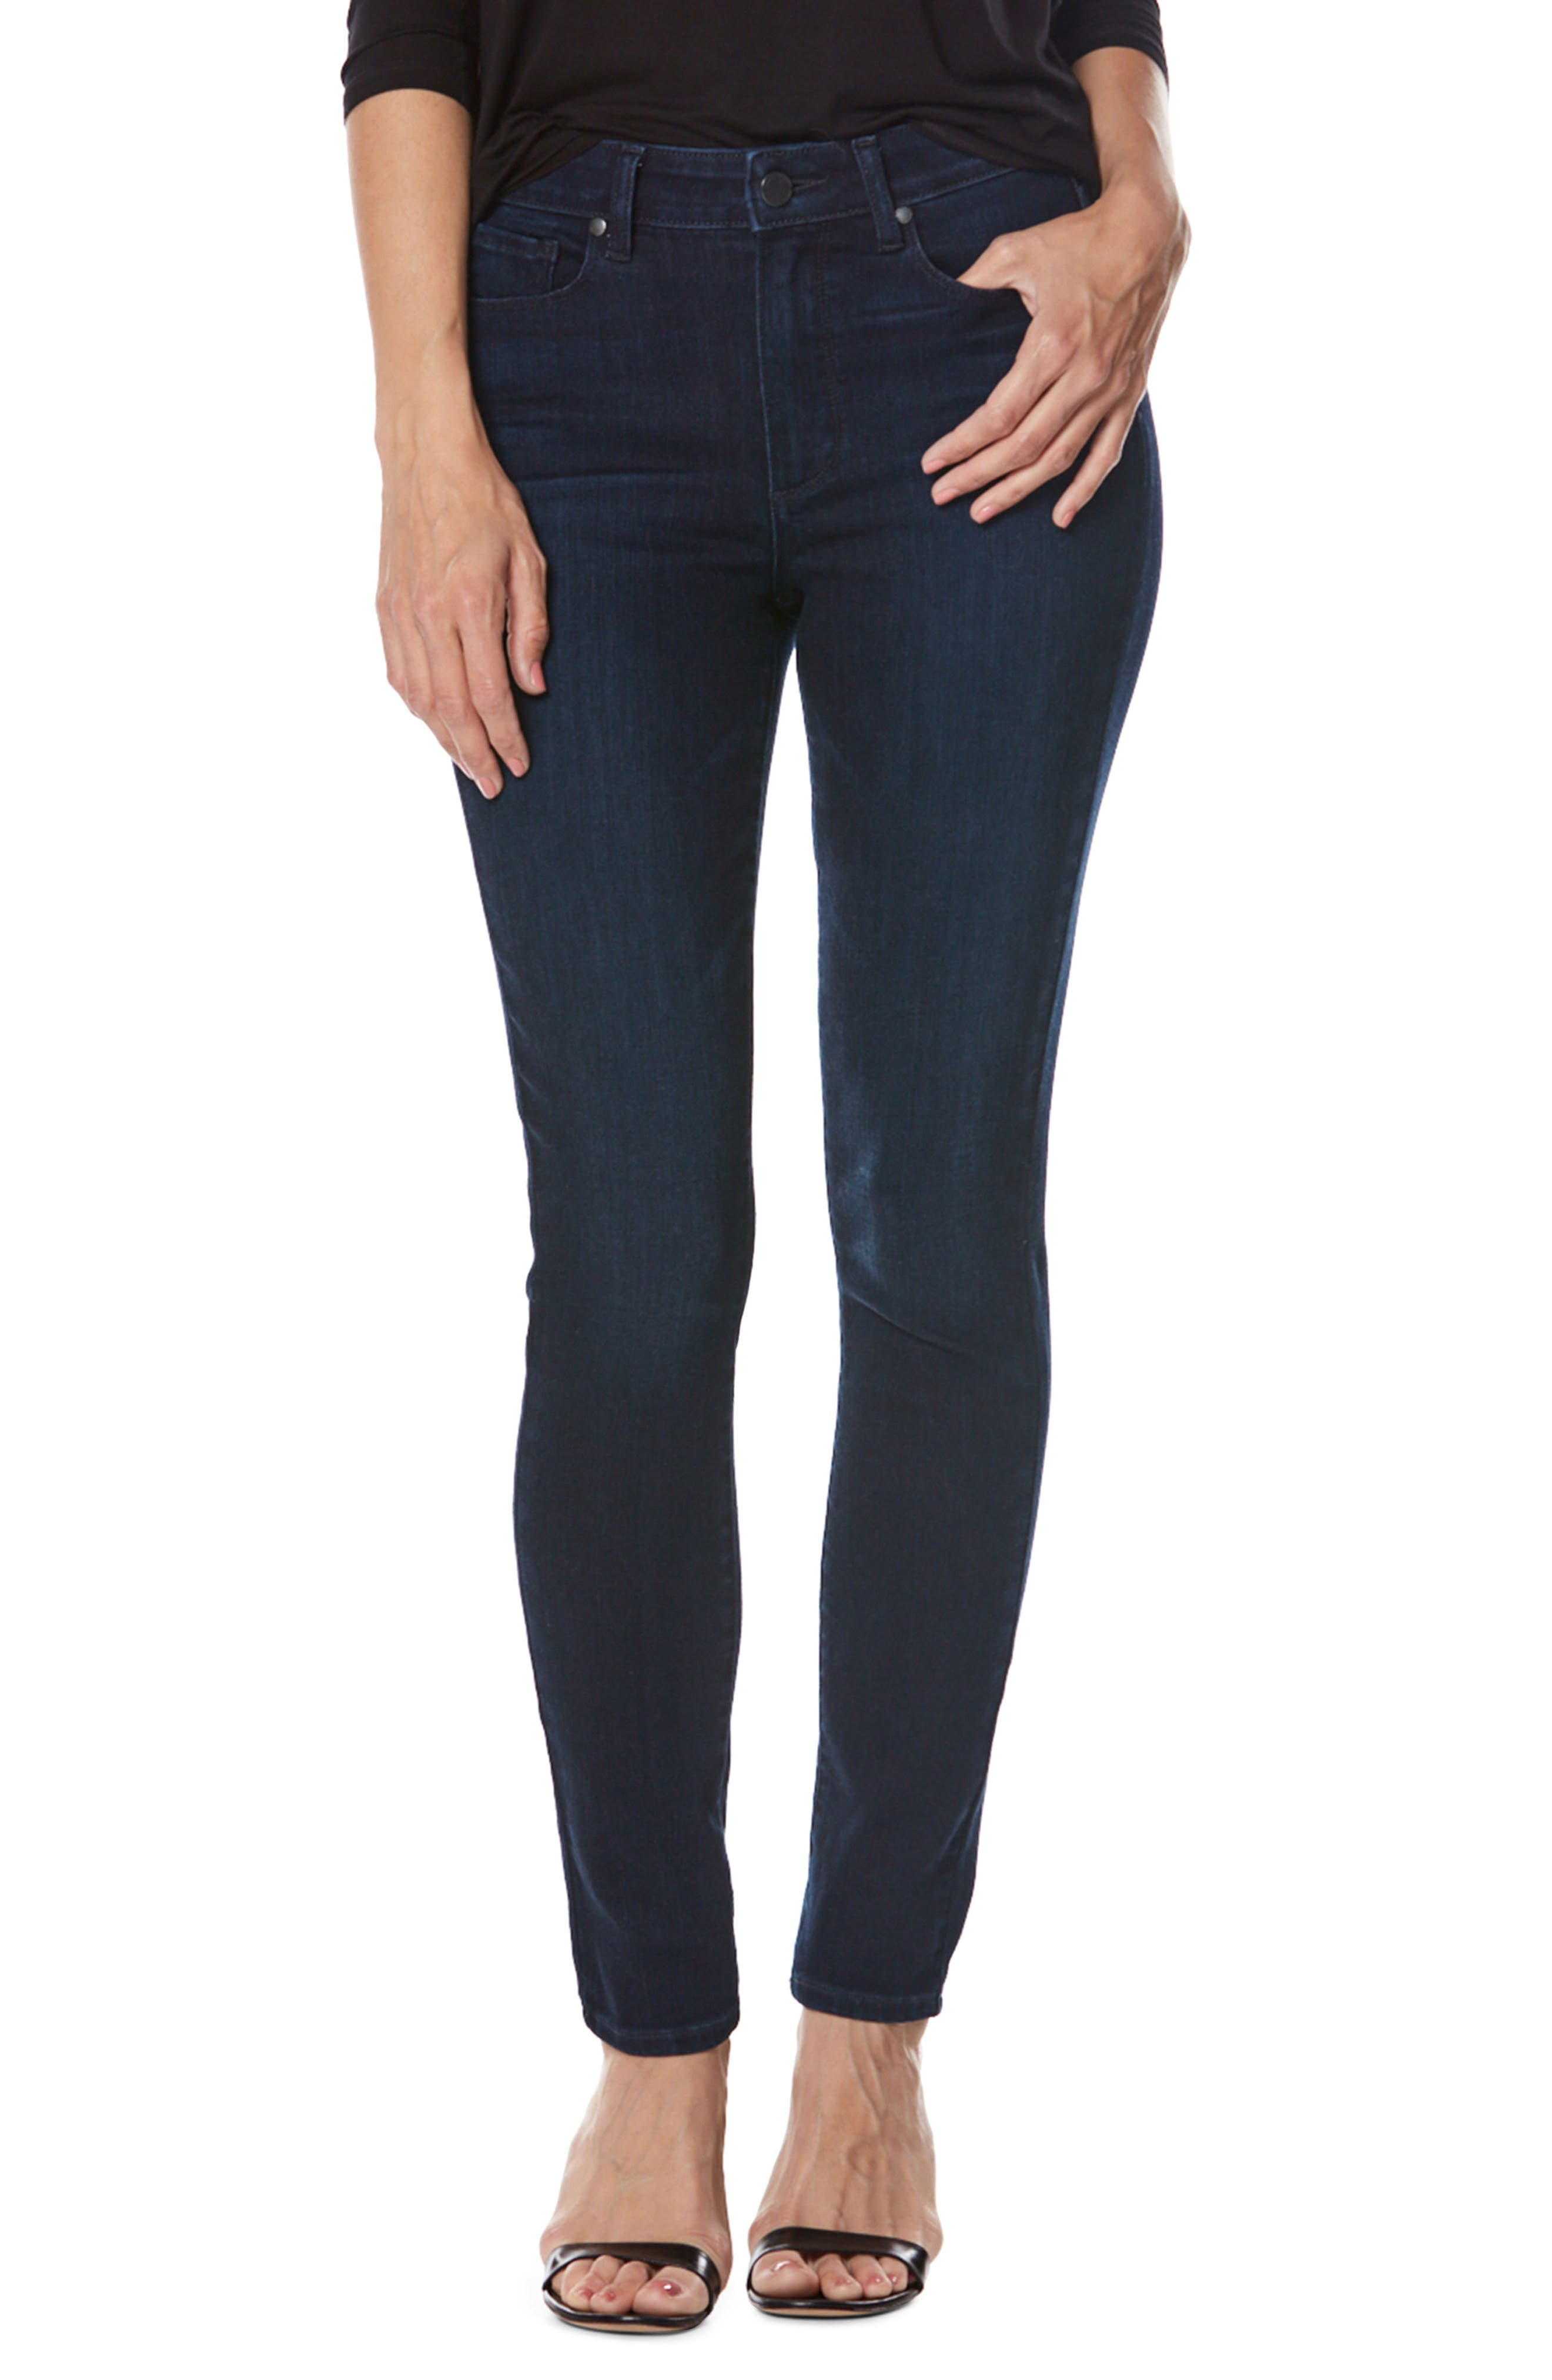 Main Image - PAIGE Transcend - Hoxton High Waist Ultra Skinny Jeans (Surge)